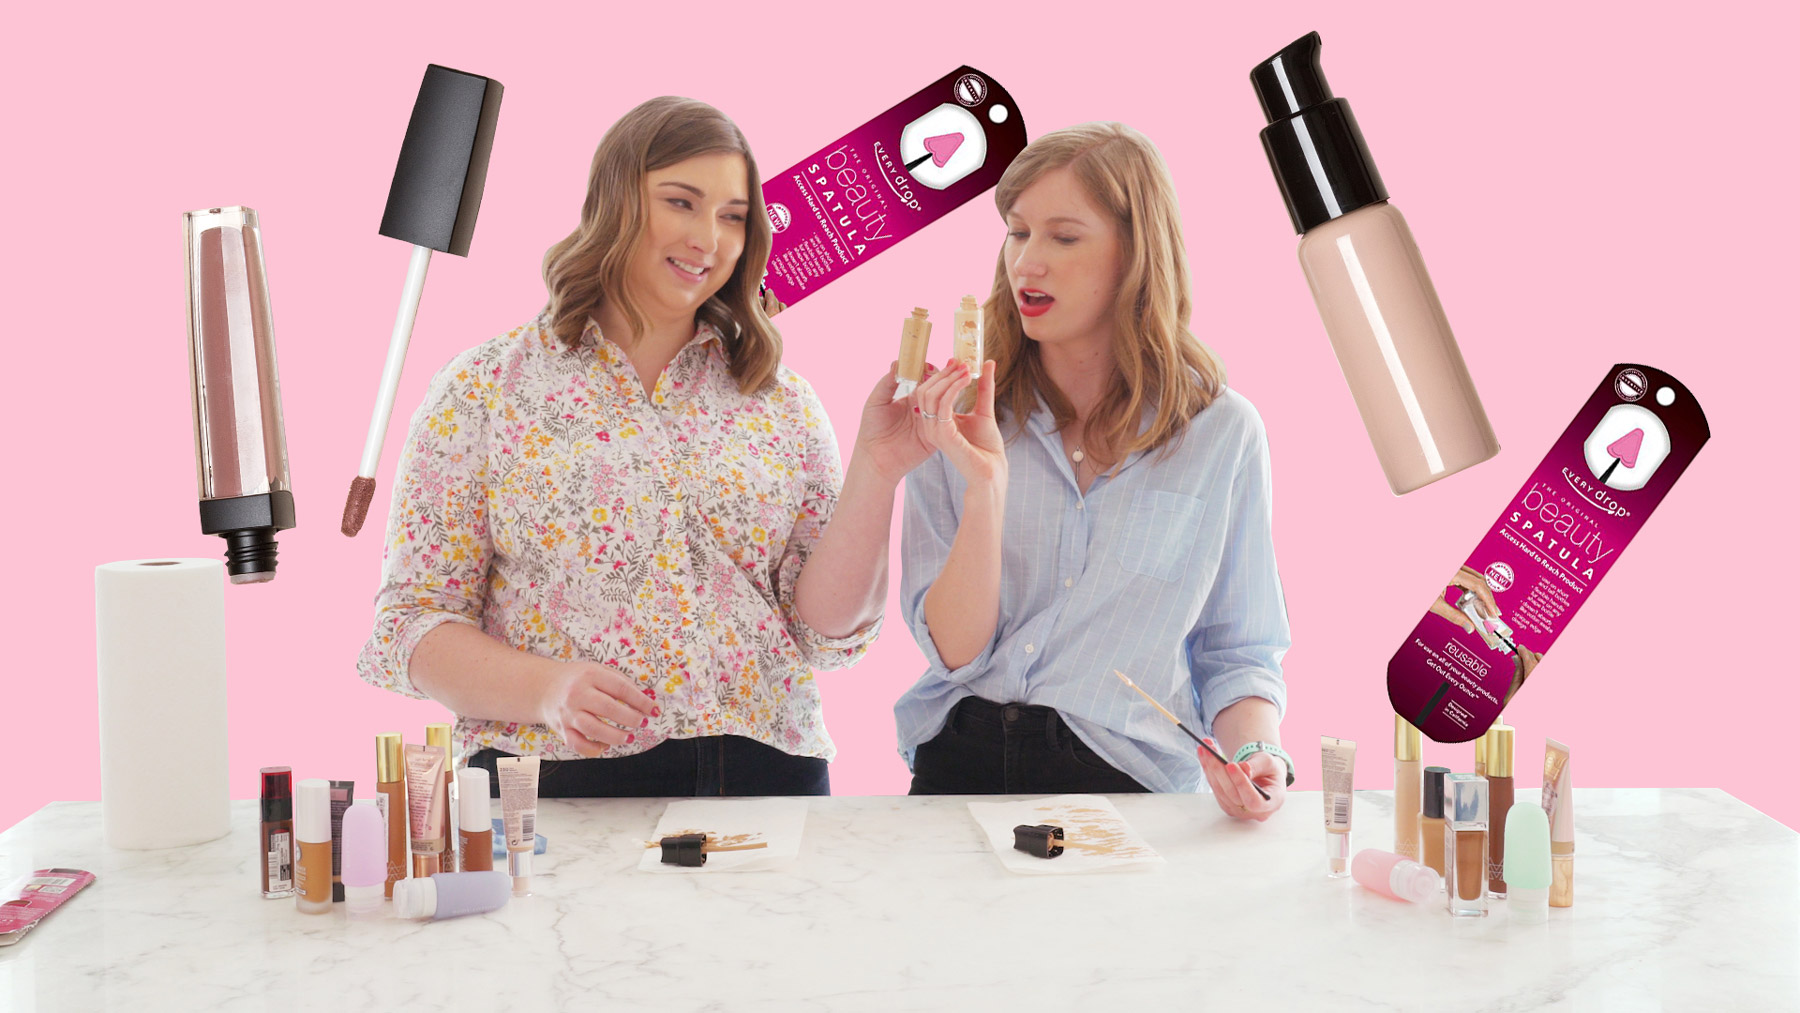 This $6 Gadget Could Save You Buckets of Money on Beauty Products